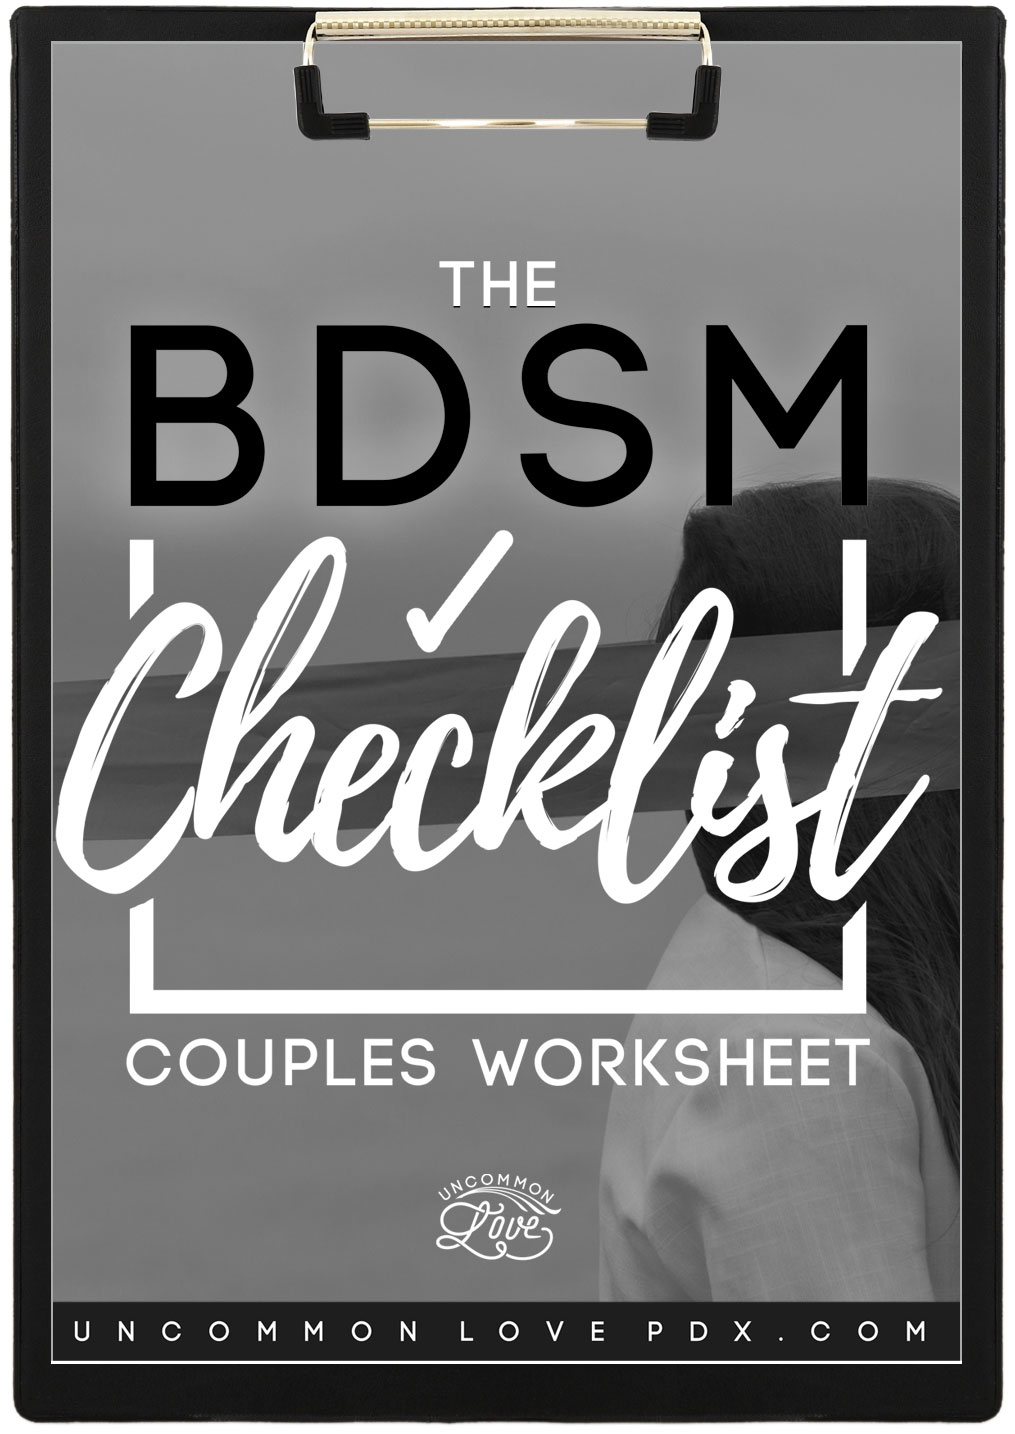 BDSM Checklist | Sex-Positive Worksheet | BDSM Worksheet | Sex Play Guide